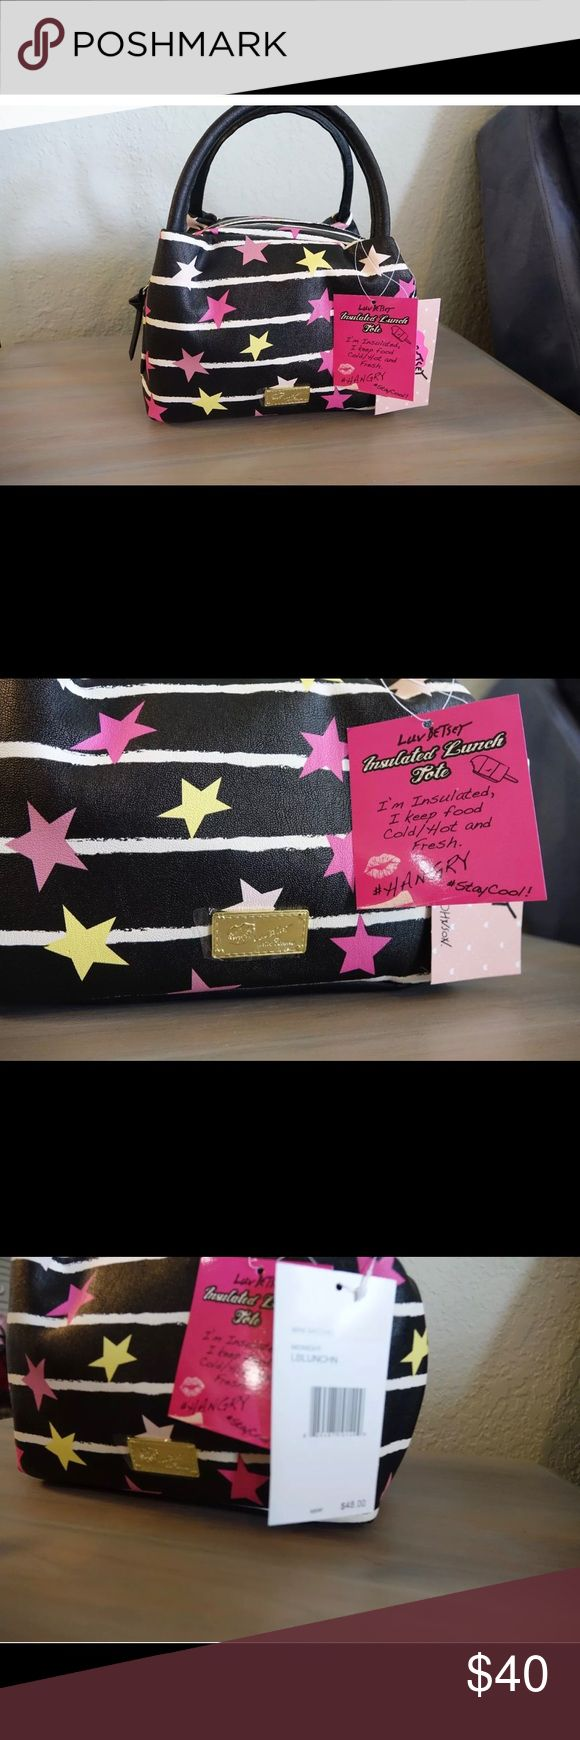 NEW Betsey Johnson Insulated lunch bag BRAND NEW WITH TAGS  Luv by Betsey Johnson Insulated Lunch Tote mini satchel Adorable colorful Stars and Stripes. It's insulated to keep your food Cold/Hot and Fresh. Say goodbye to your boring lunch bag and switch to this adorable stylish tote. Retails for $48.00  100% Authentic Betsey Johnson  Measurements Height-6.5 inches Length-9 inches Depth-5.5 inches No trades Betsey Johnson Accessories Bags